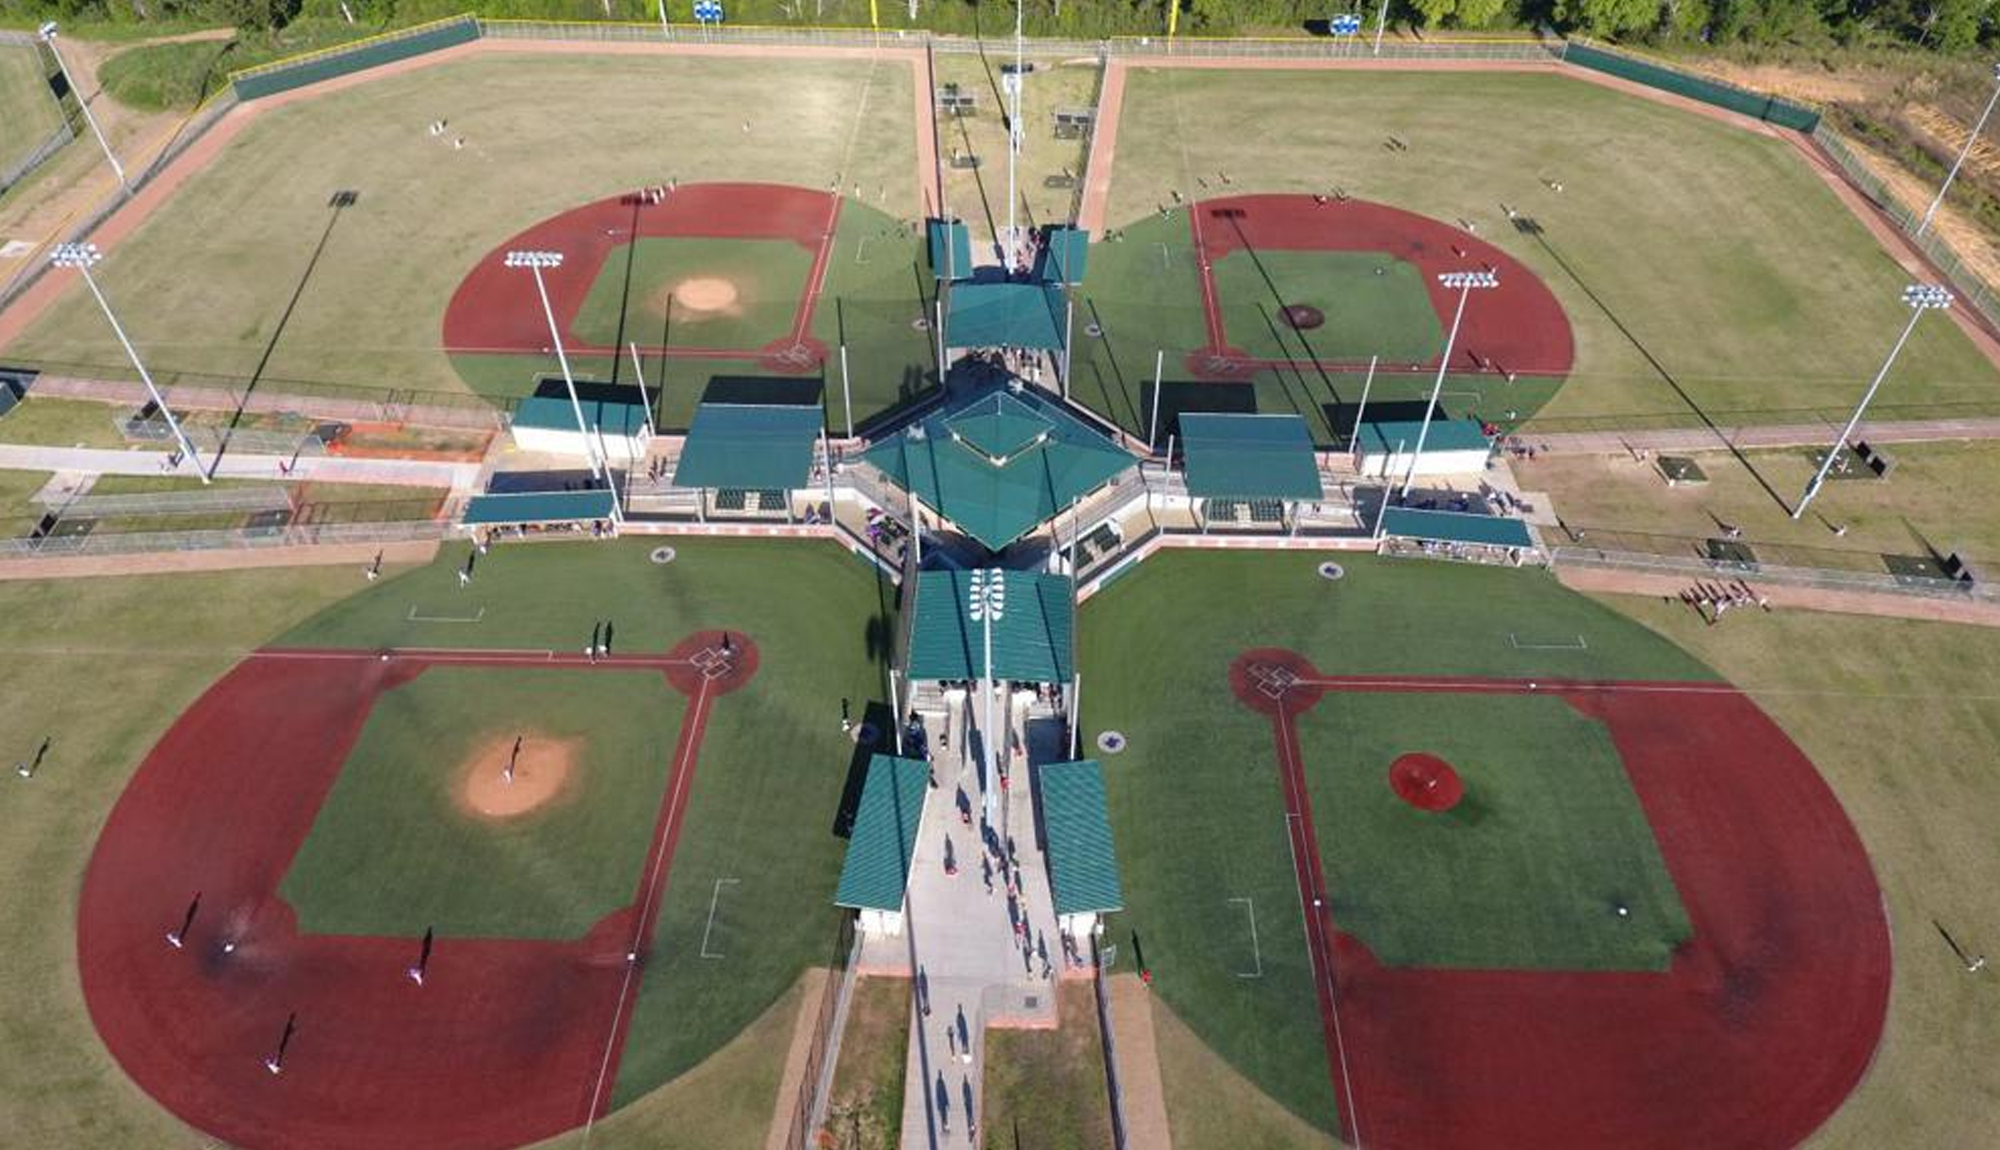 2018 Sunshine South Showcase - Top Prospect Teams | Perfect Game